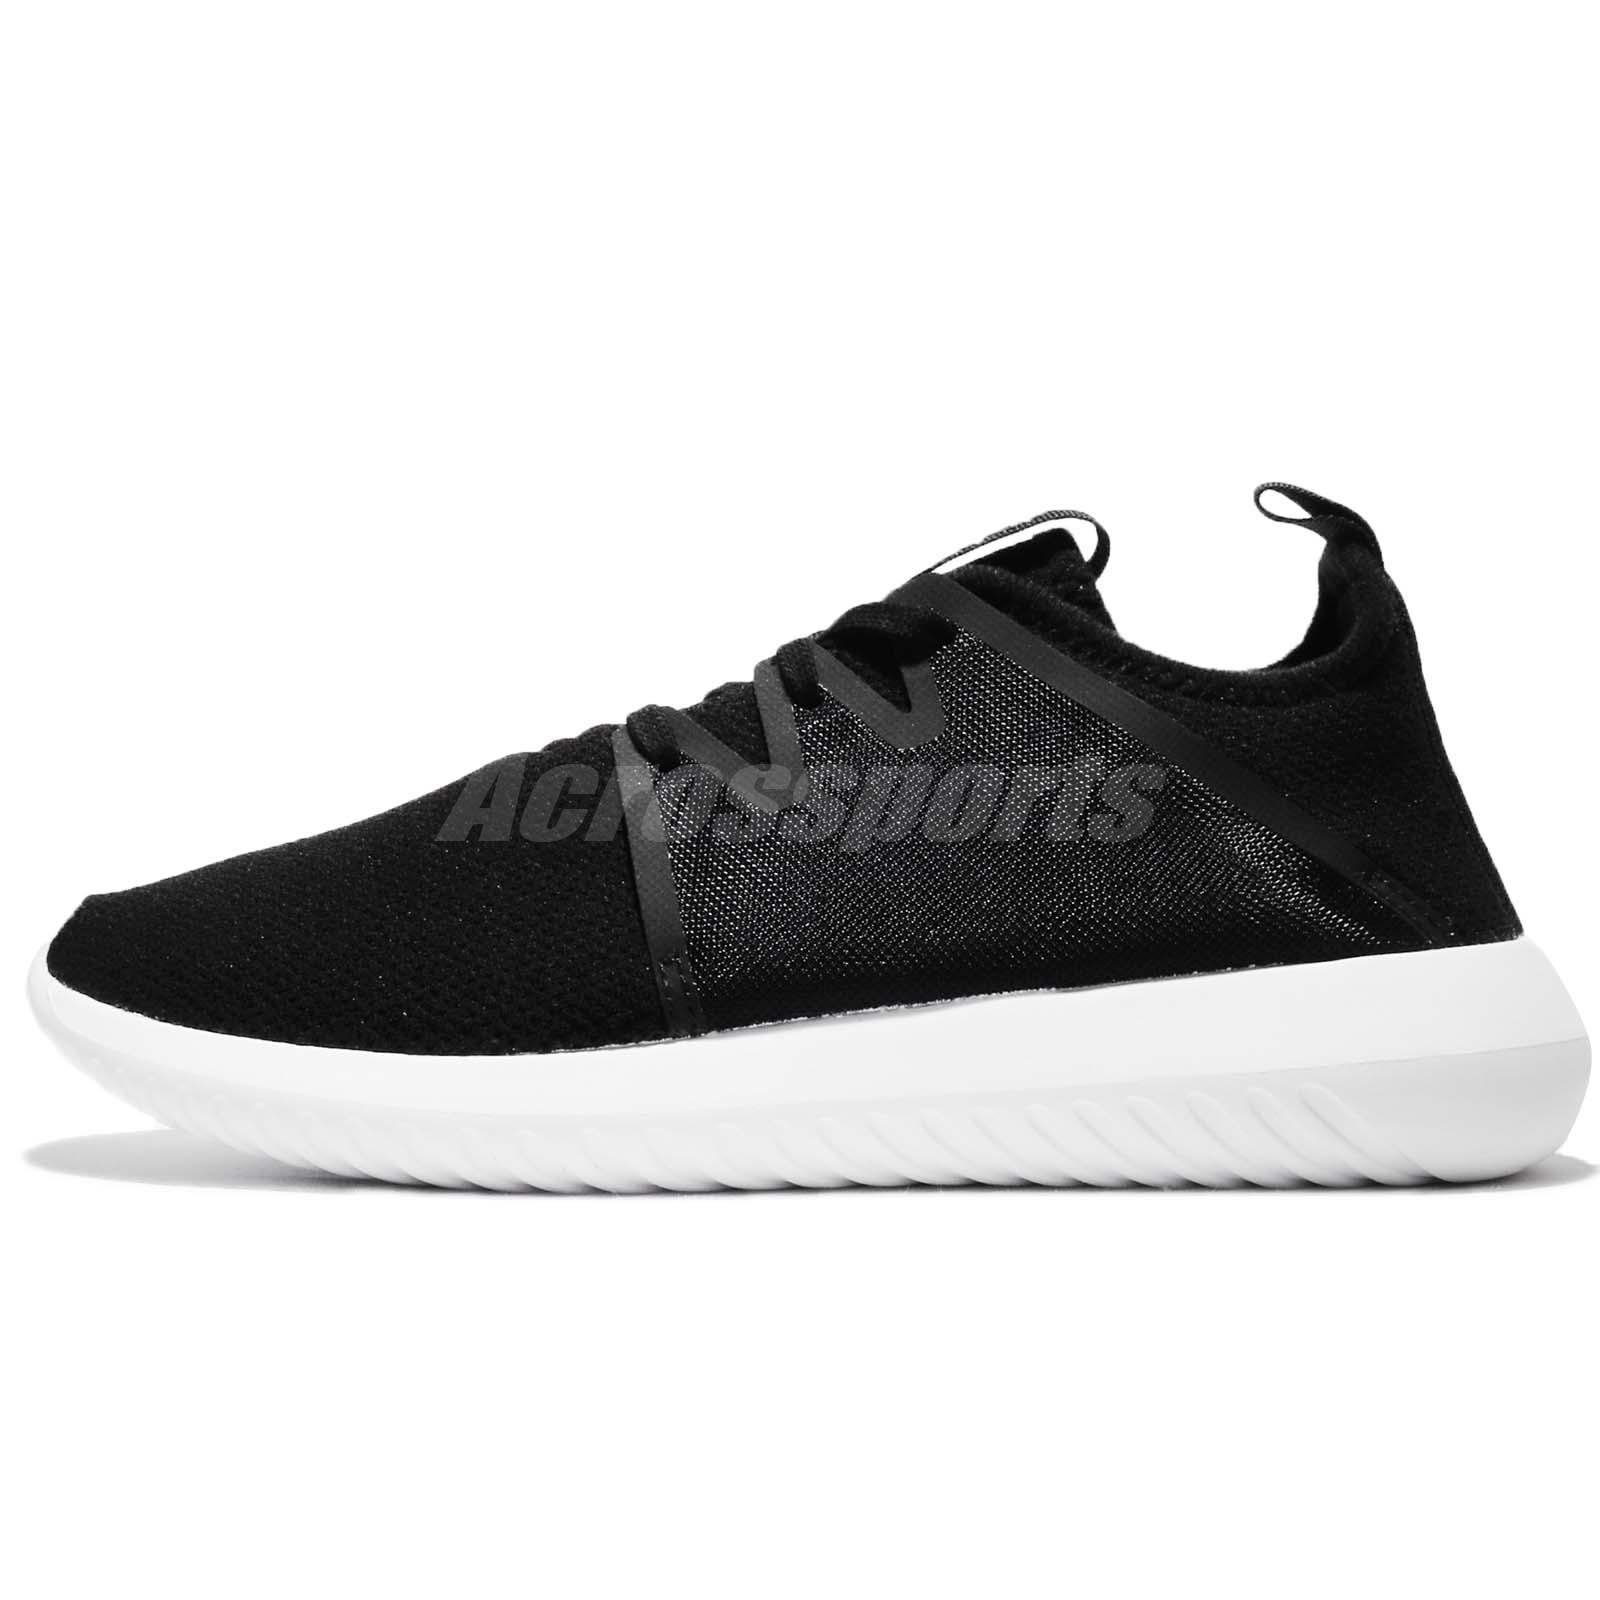 huge selection of 5a60b 0115f Details about adidas Originals Tubular Viral 2 W Black White Women Running  Shoe Sneaker BY9742